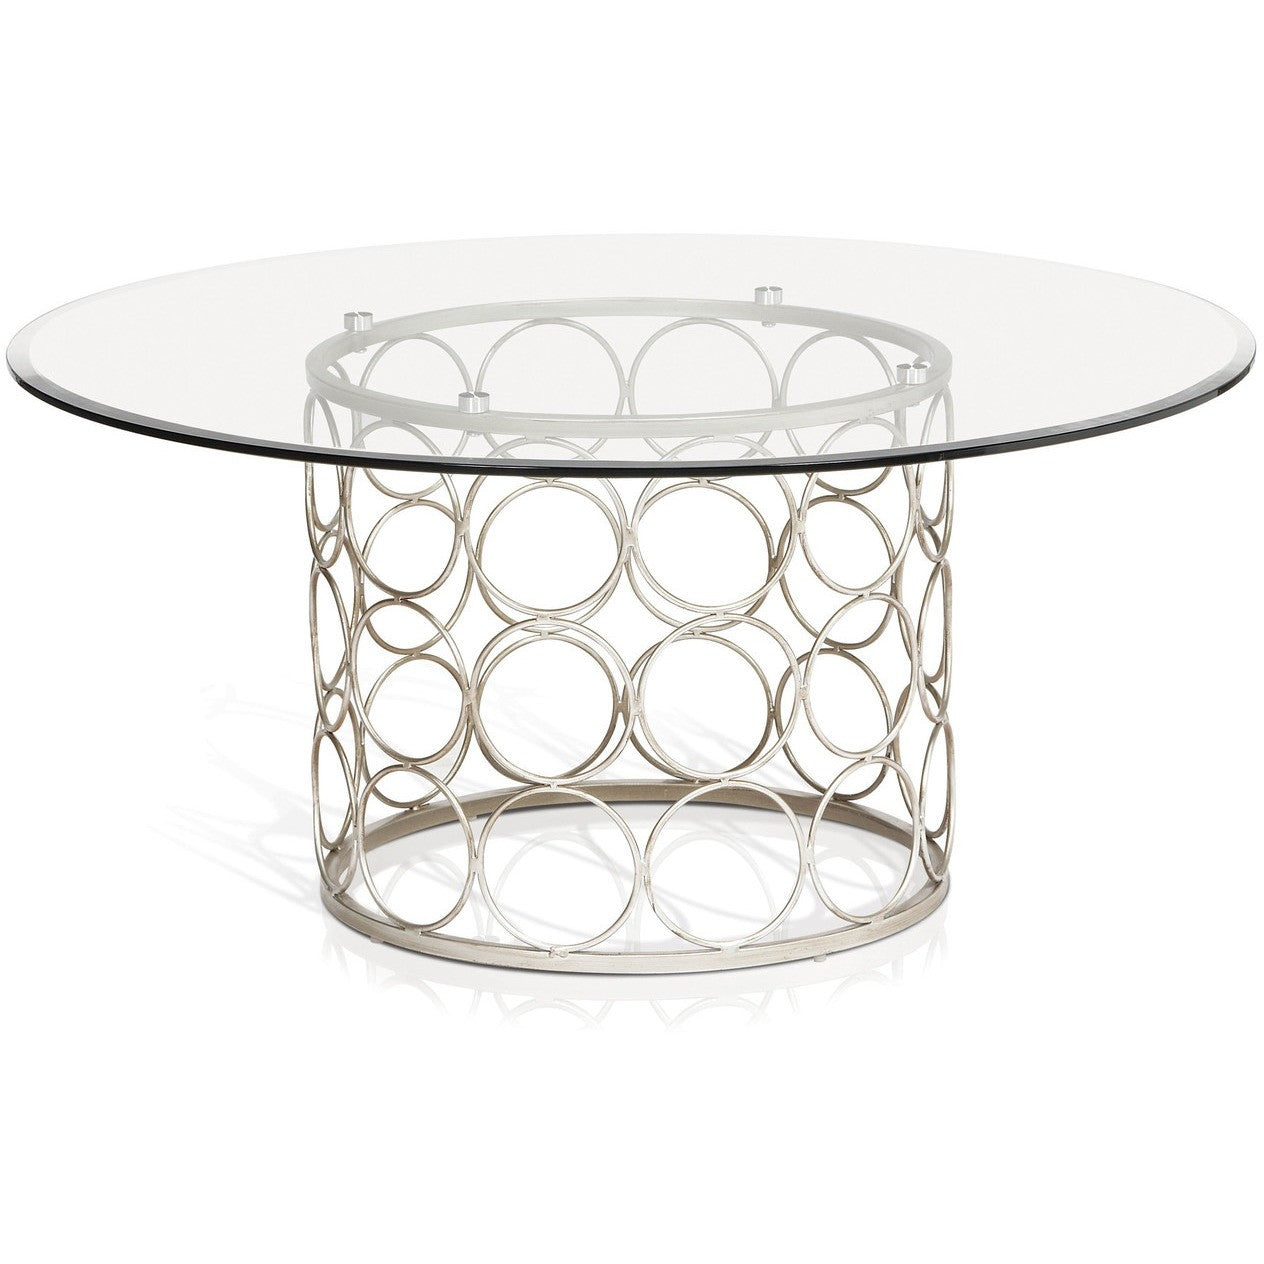 Bacall Round Glass Coffee Table Seranhome Furniture Accessories